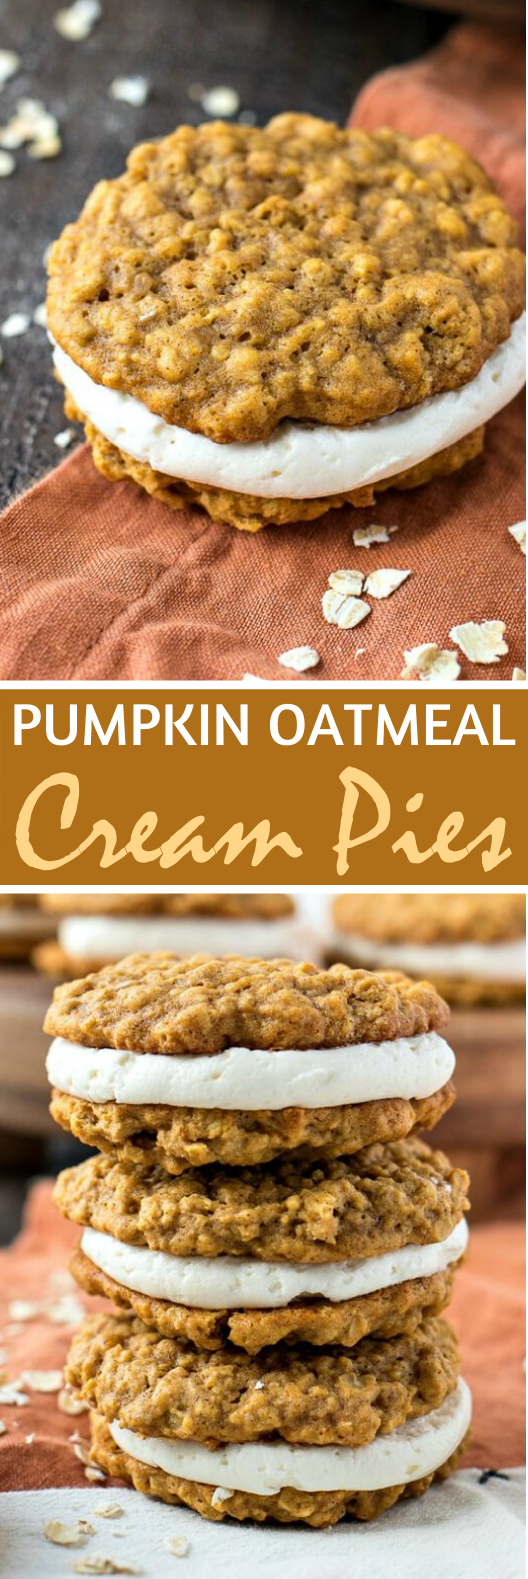 Pumpkin Oatmeal Cream Pies #cookies #desserts #baking #easy #fall